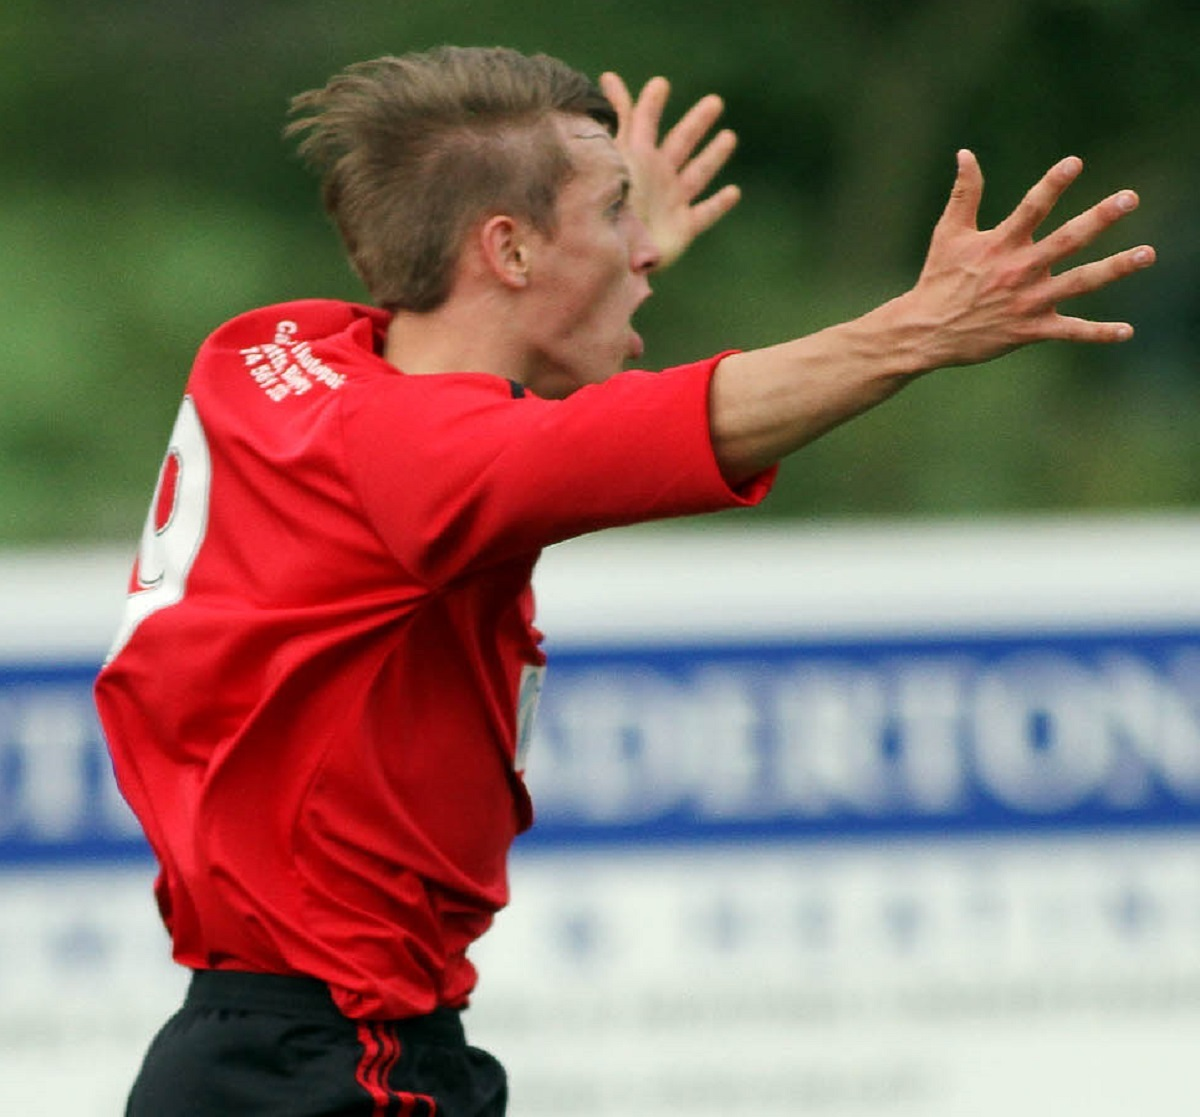 Chris Wademan scored Silsden's decisive goal